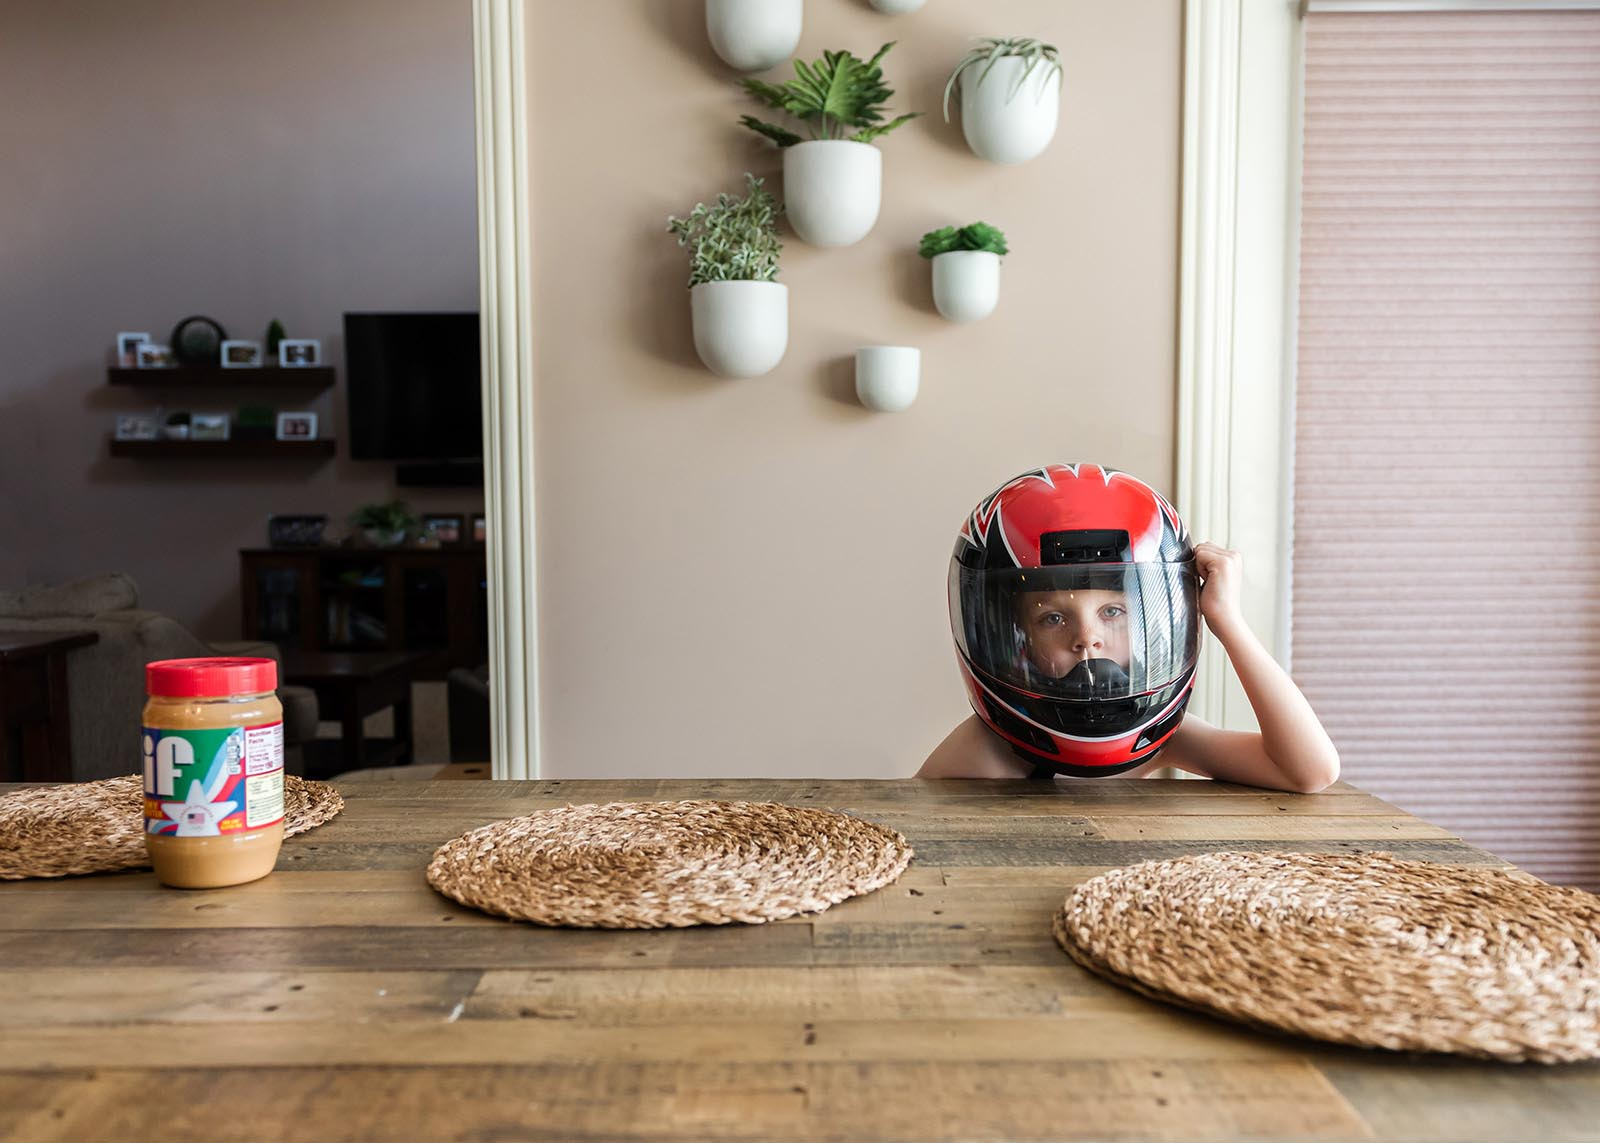 A boy sits at the table wearing a motorcycle helmet in this humorous everyday image.